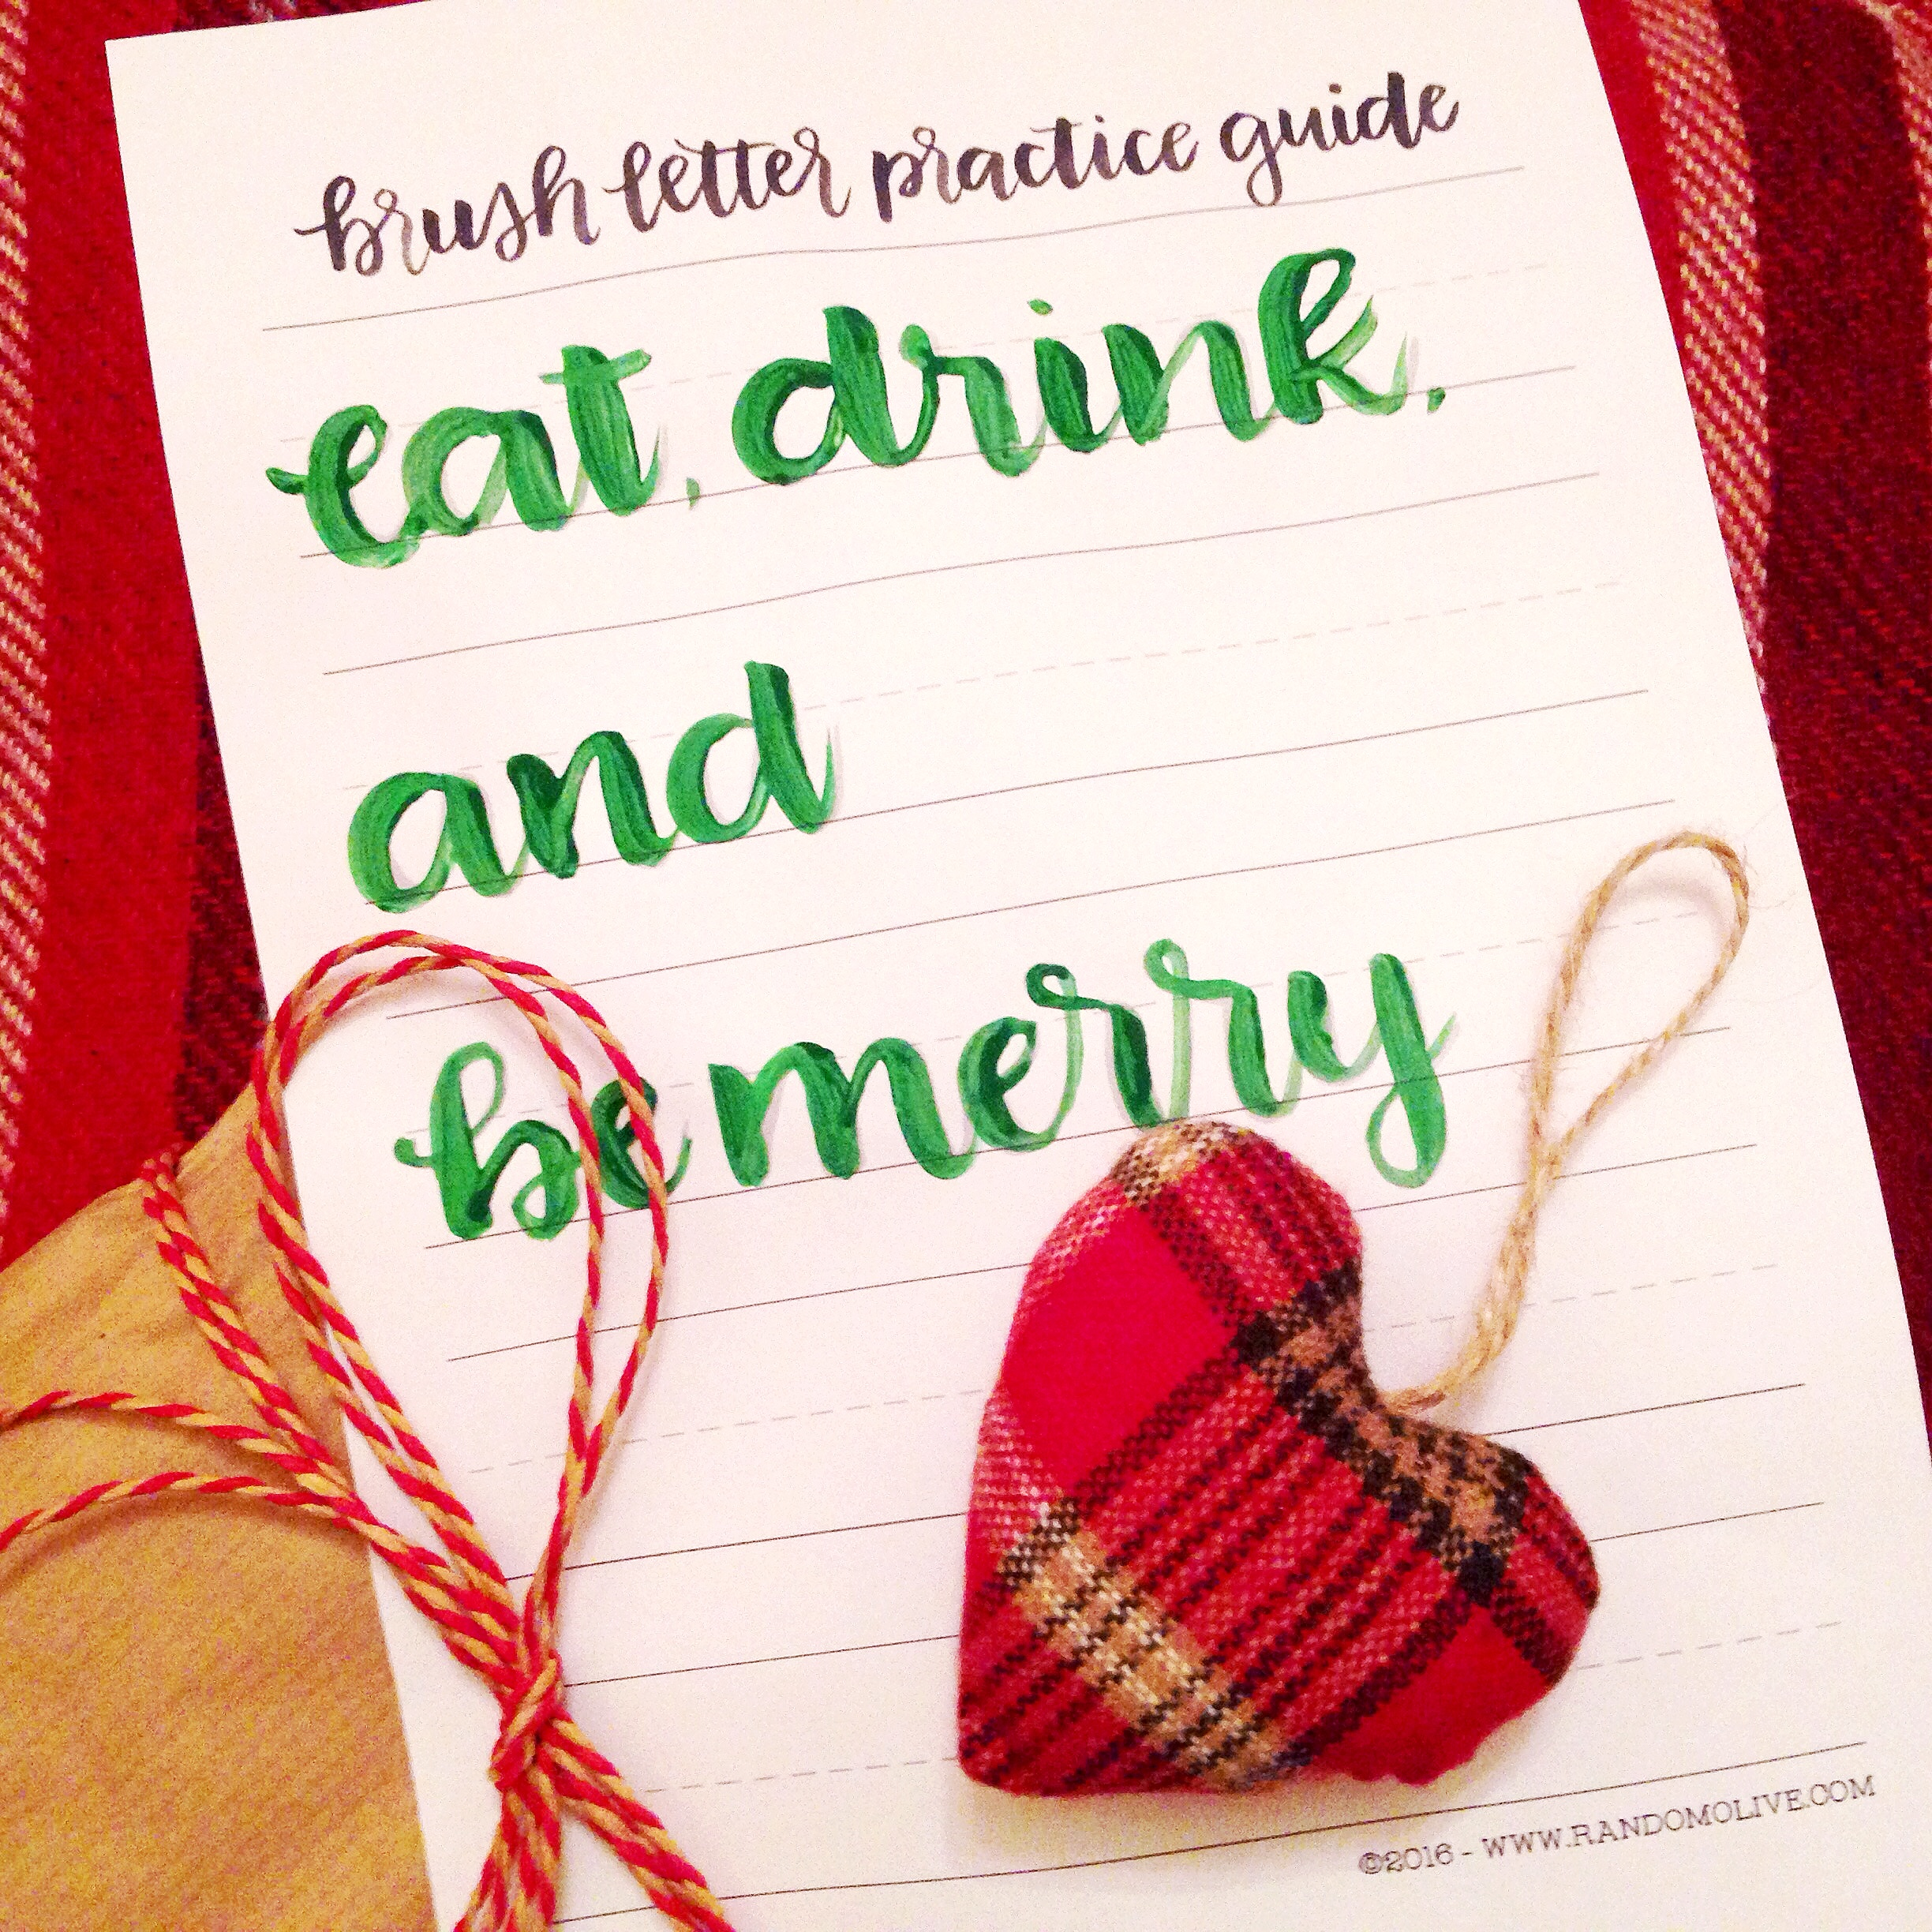 Completed eat drink and be merry brush letter practice guide yellow feather blog